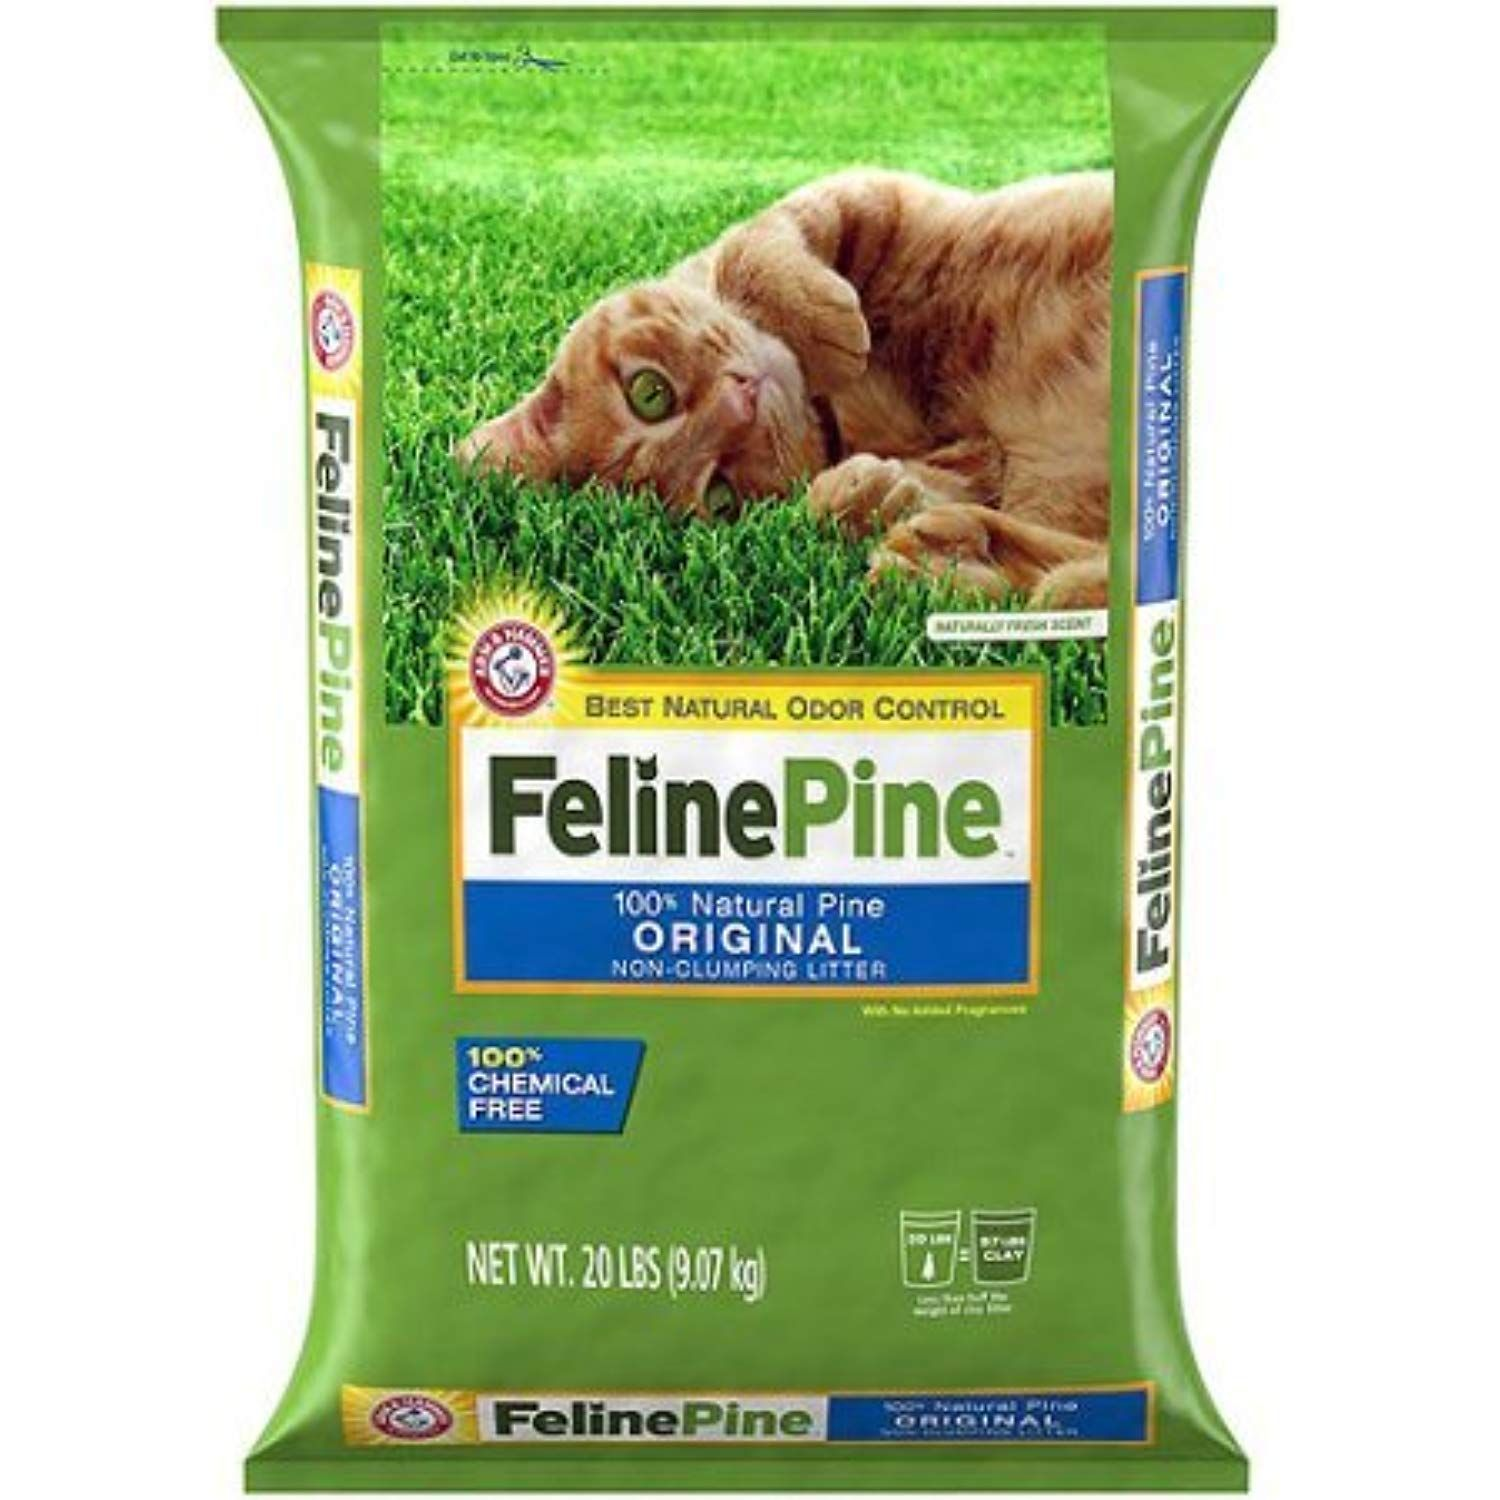 Feline Pine Original Cat Litter 20 30 Lbs 2 Pack You Can Get More Details By Clicking On The Image Thi Natural Cat Litter Pine Cat Litter Cat Litter